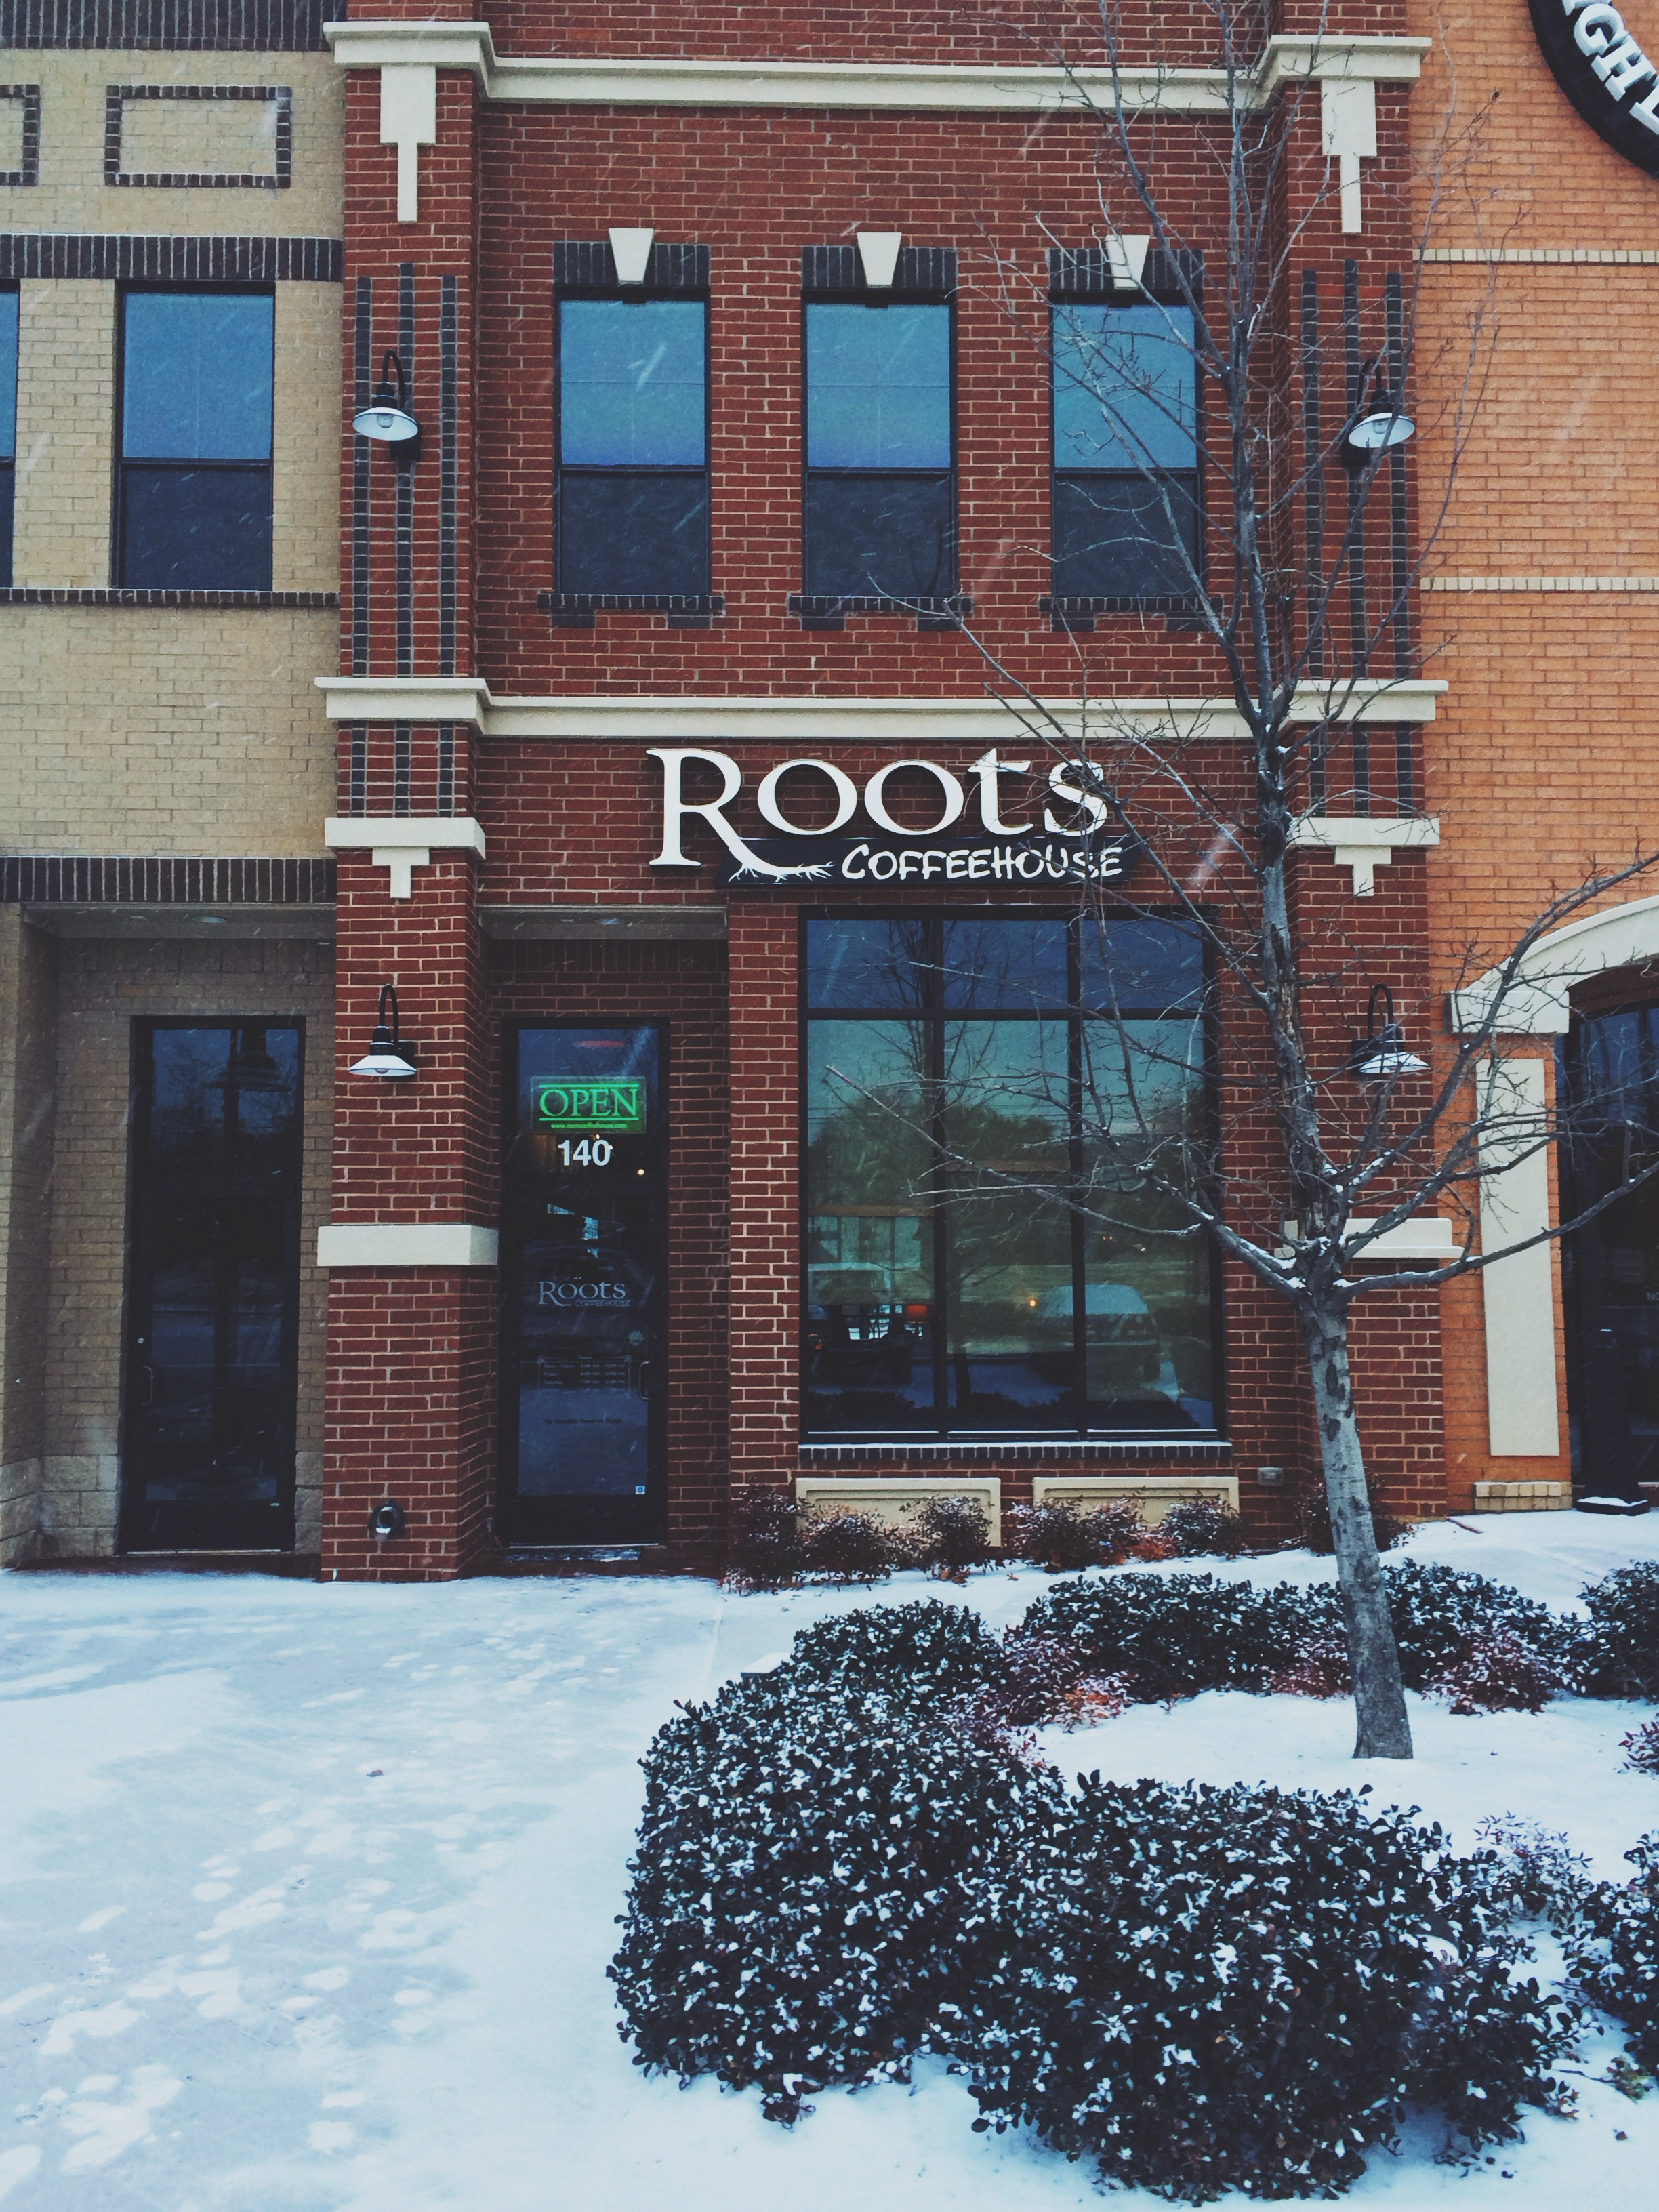 Seriously love this place. Pictures of roots coffee populate 75% of my Instagram feed